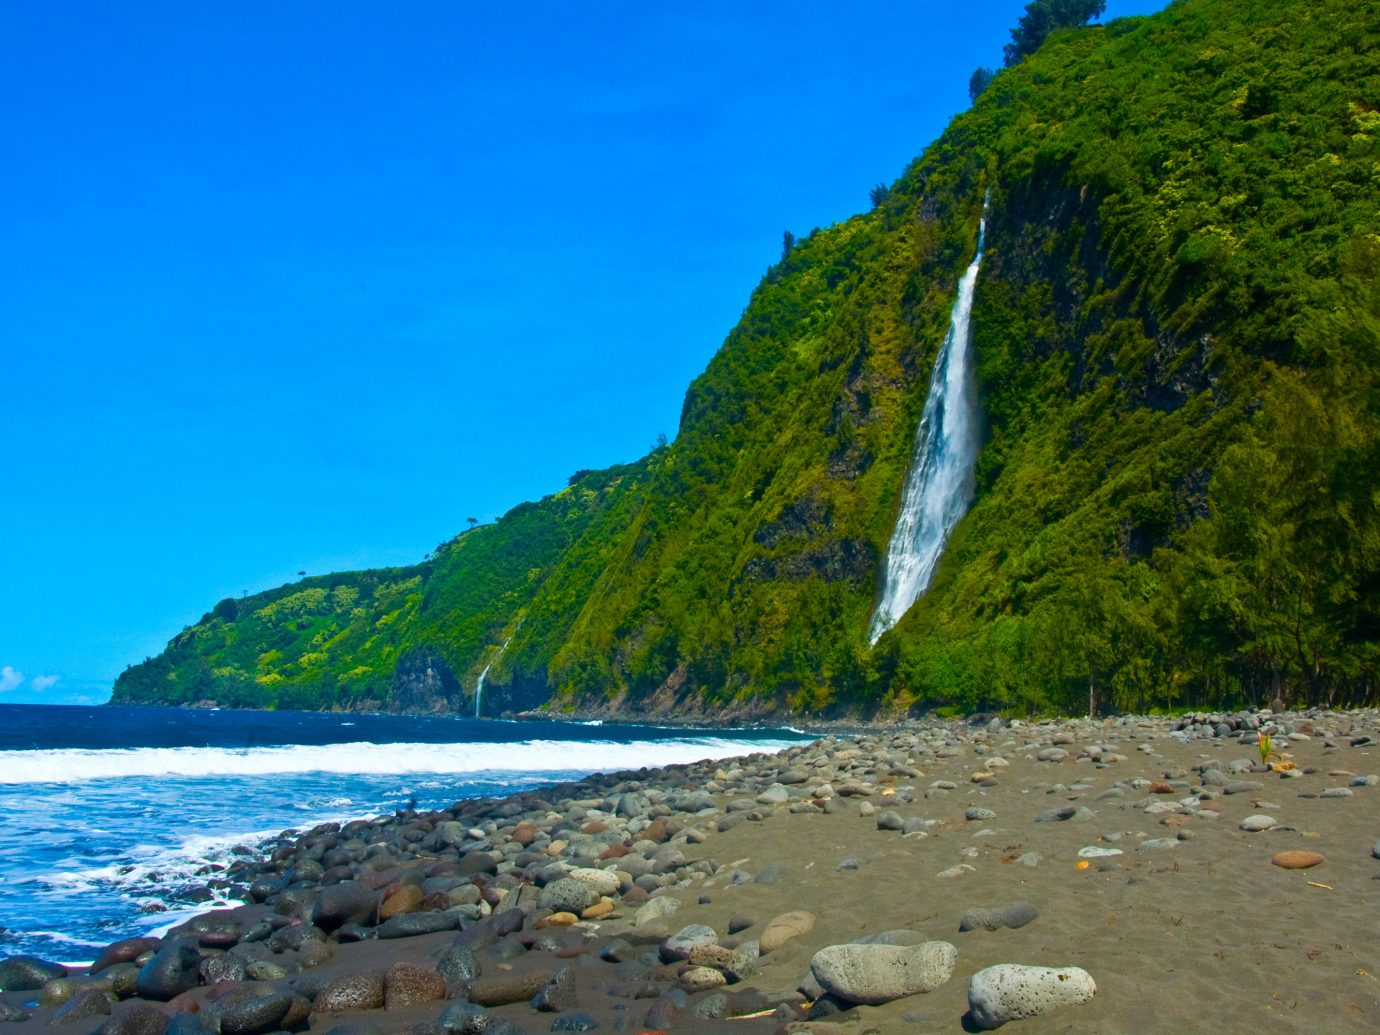 outdoor water sky Nature Coast body of water landform geographical feature mountain shore Sea rock cliff Beach Ocean bay terrain landscape cape fjord cove